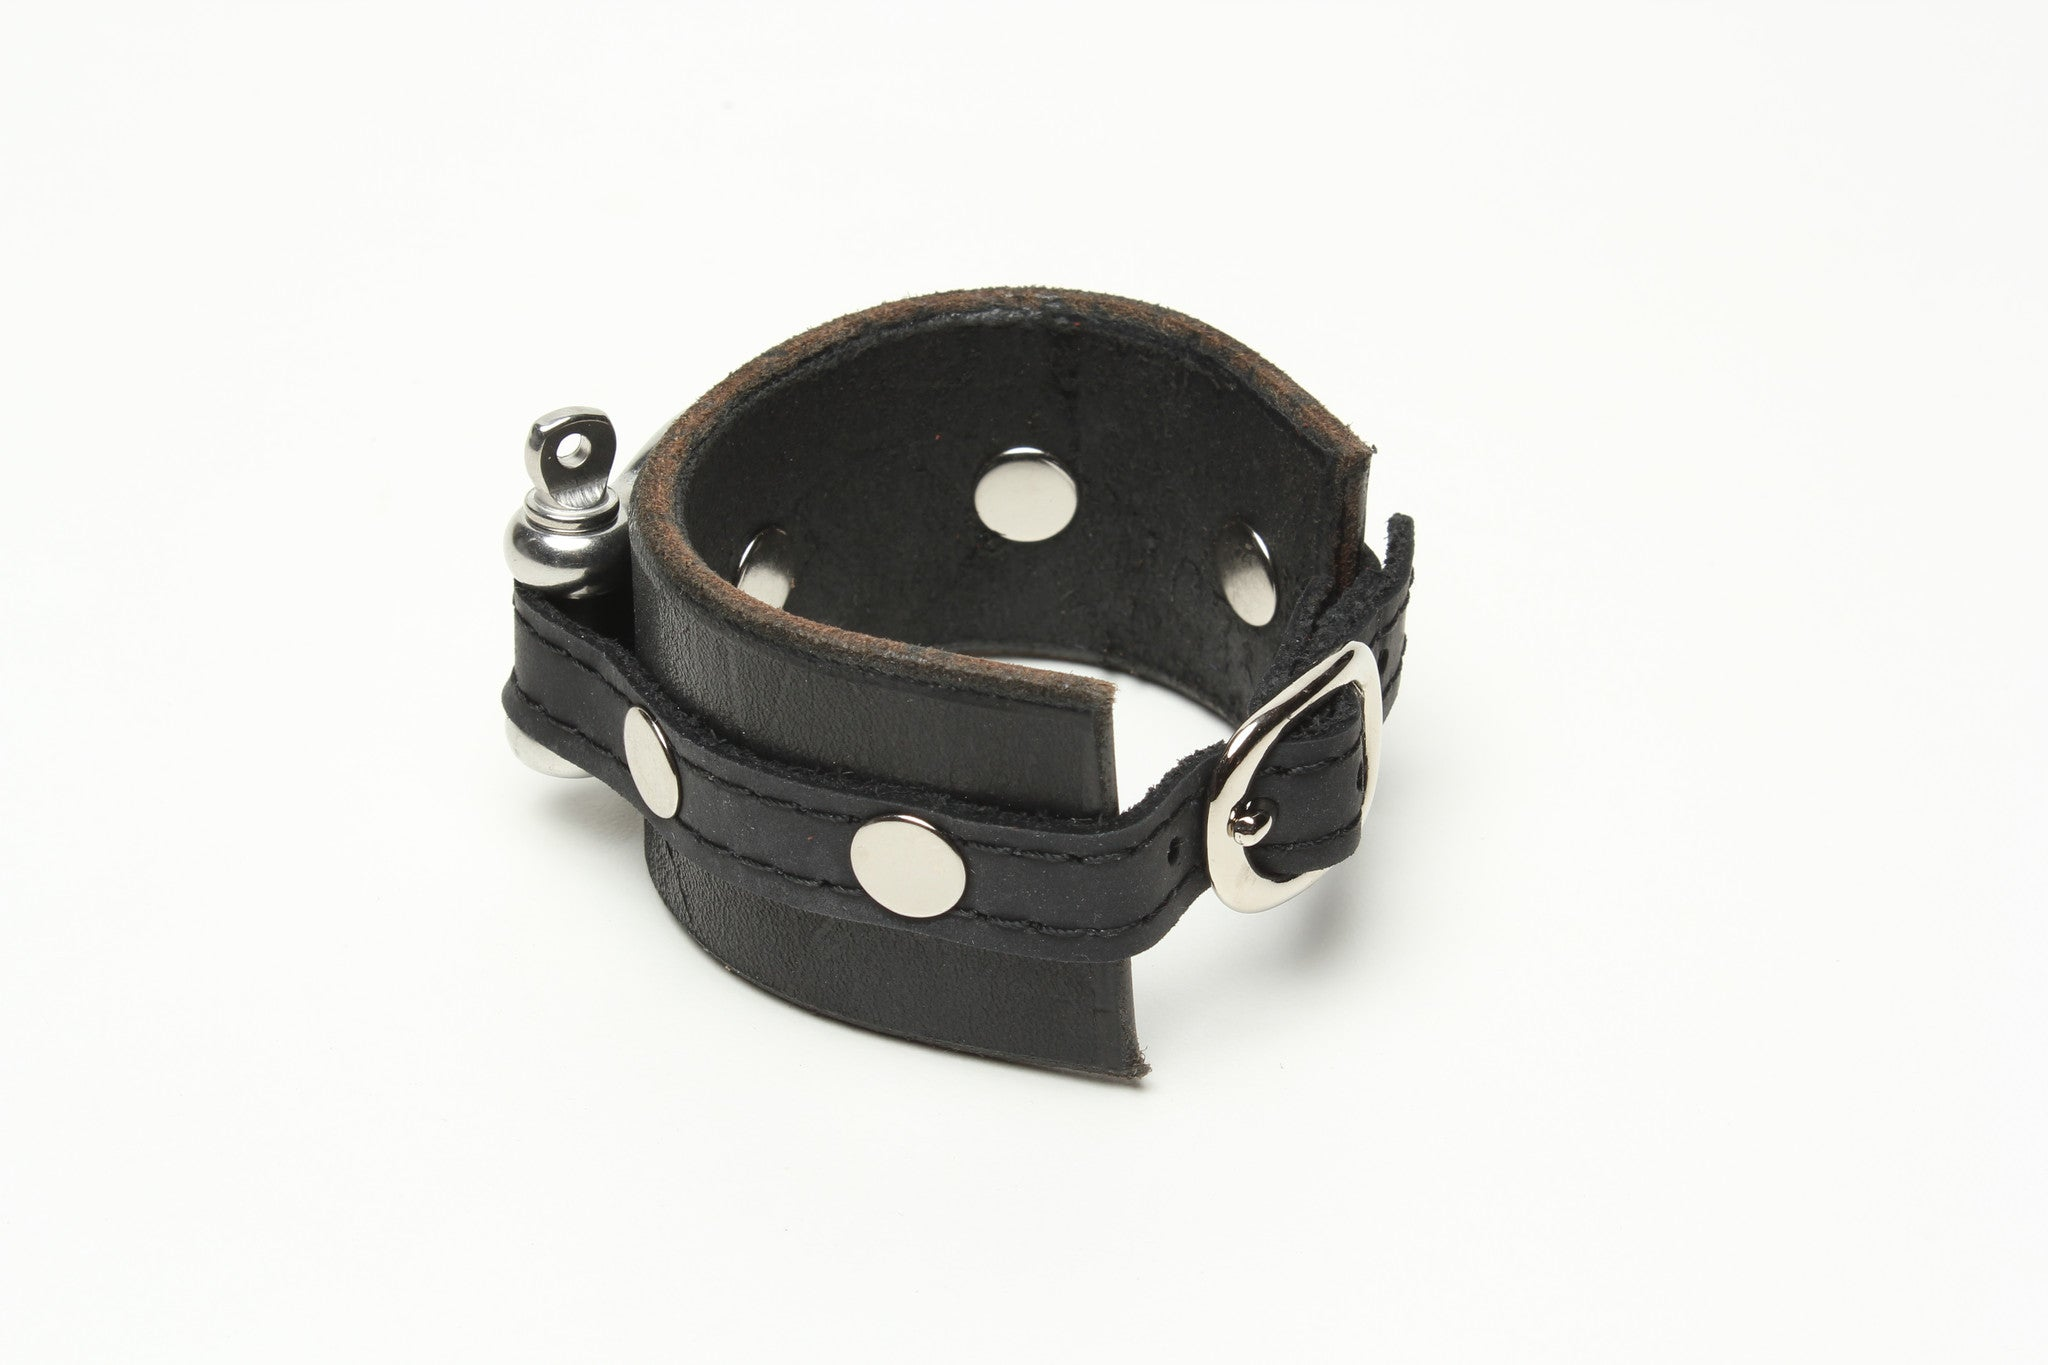 LATIGO LEATHER CUFF WITH ANCHOR SHACKLE by nyet jewelry.